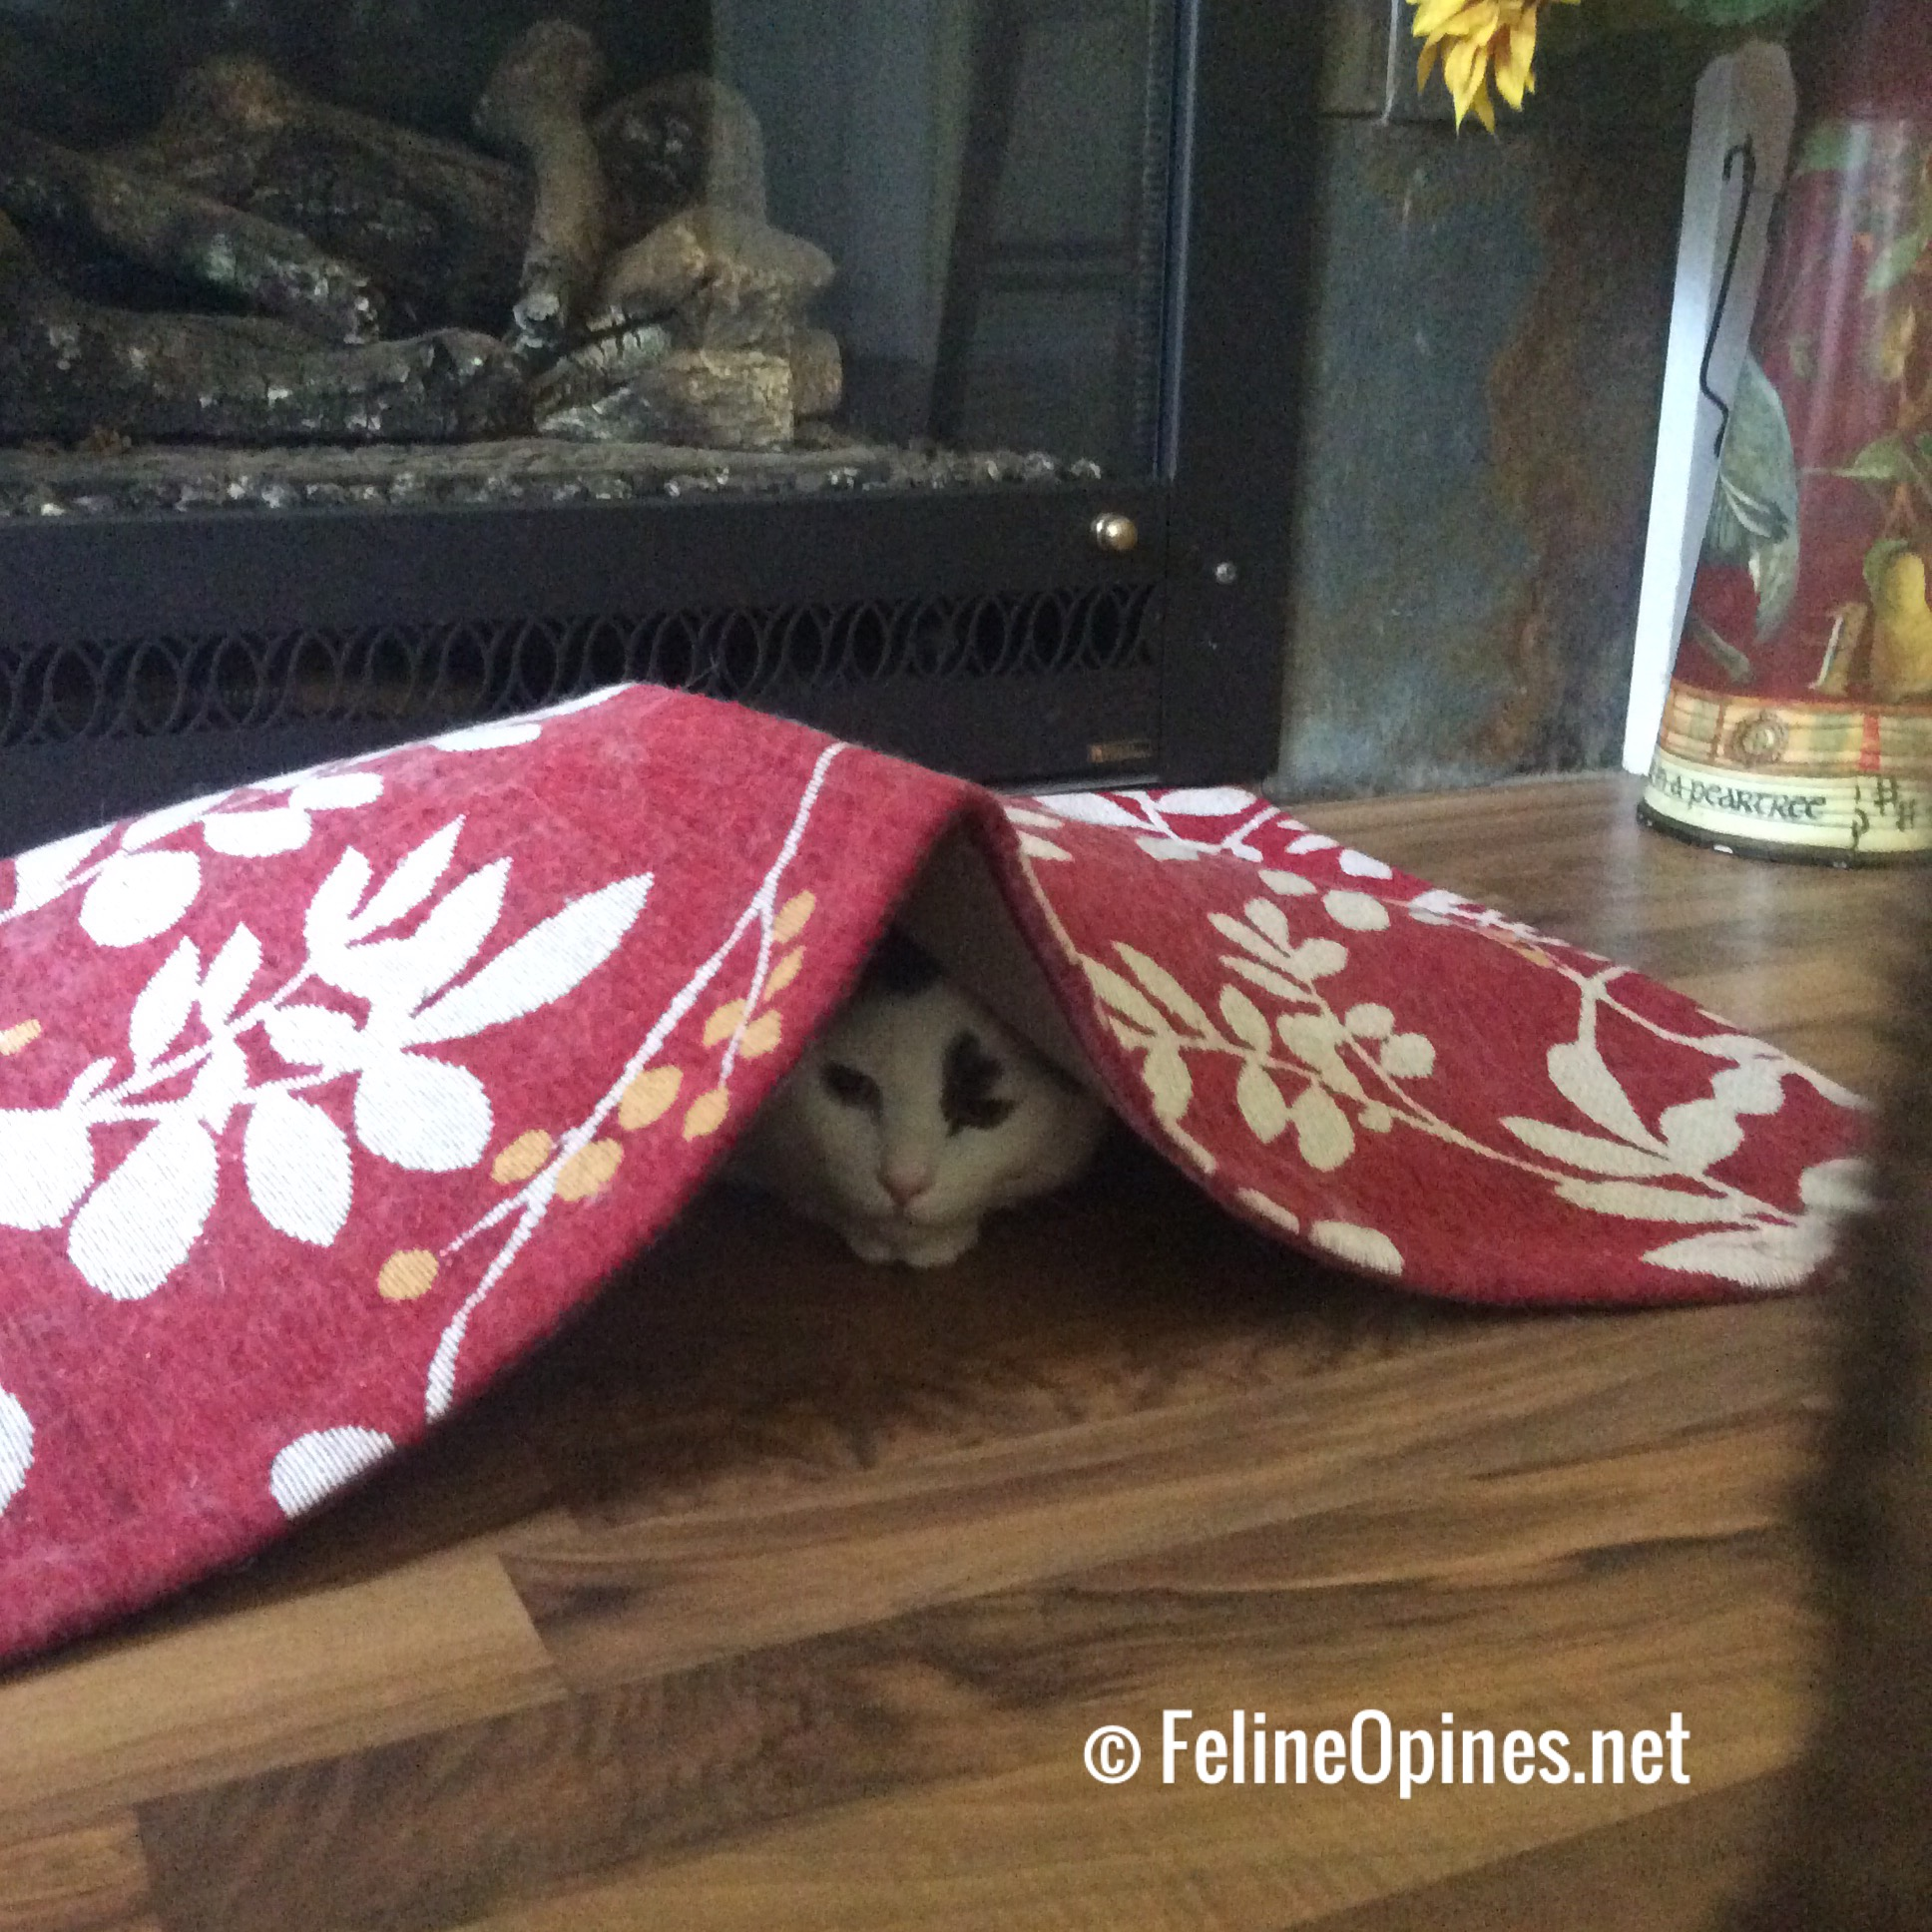 black and white cxat hiding under red and white rug